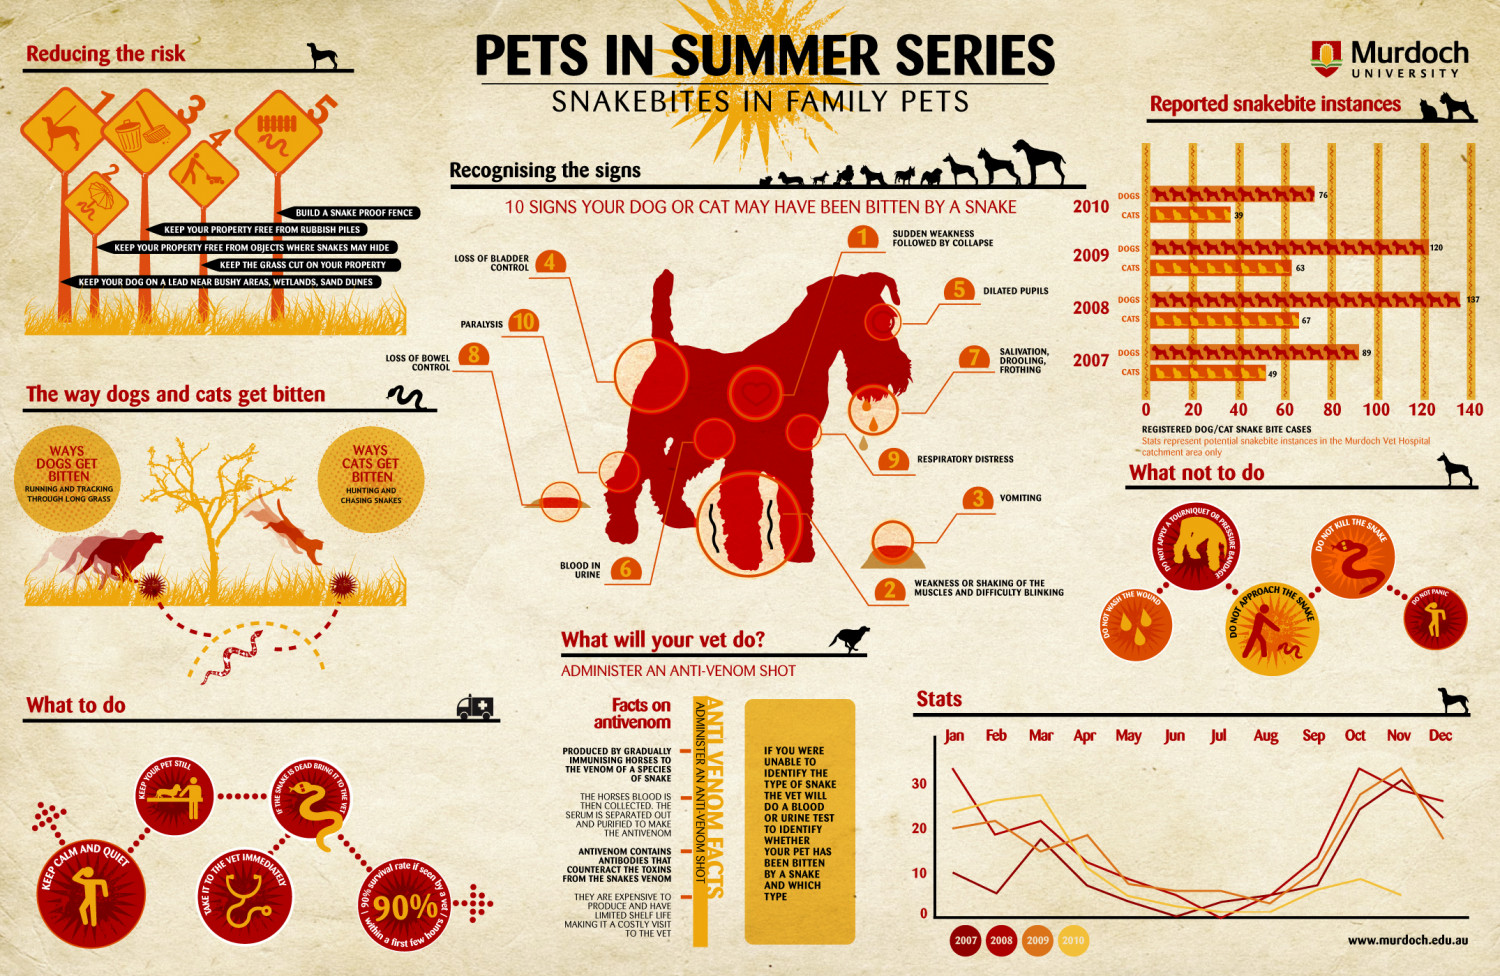 Pets In Summer Series - Snakebites In Family Pets Infographic